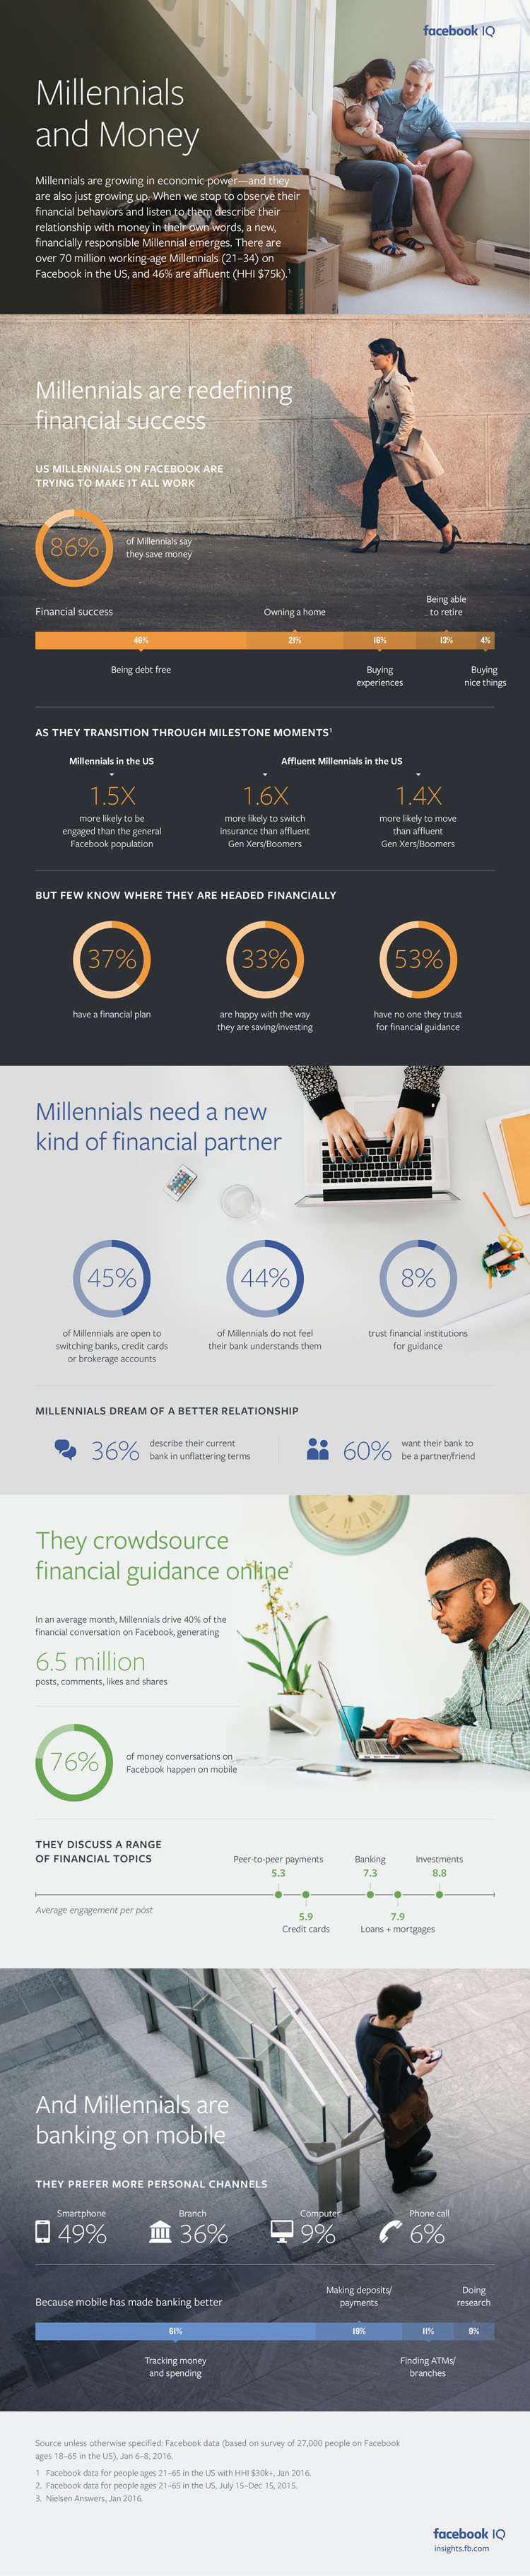 Facebook Outlines How Millennials Approach Financial Management [Infographic] | Social Media Today